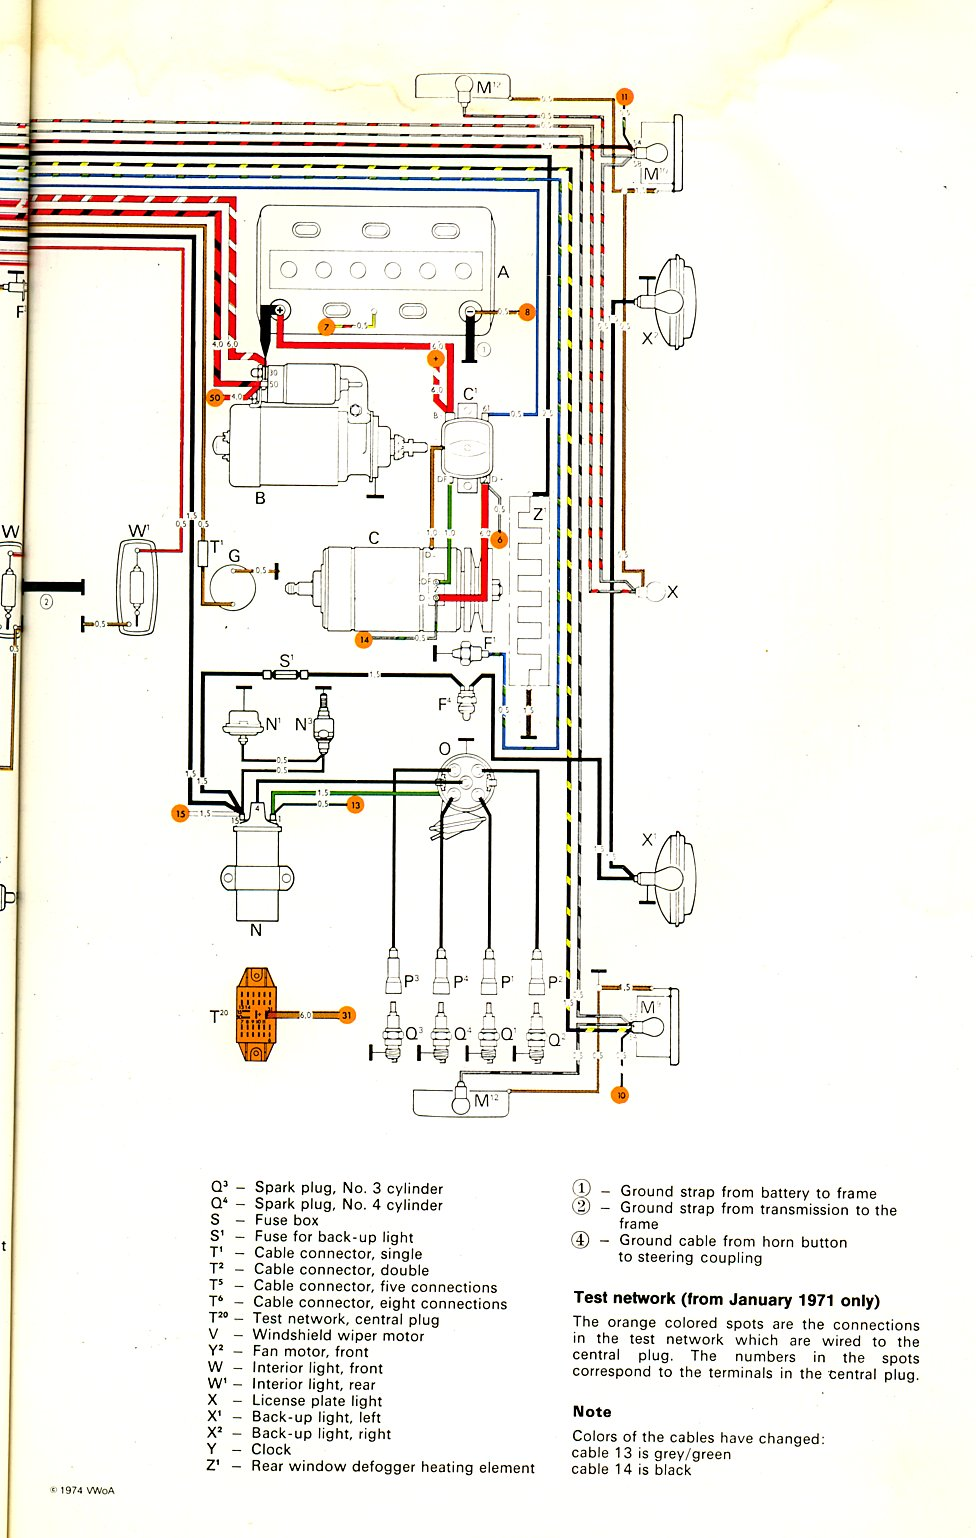 Type 2 Wiring Diagrams Old Style Push Button Fuse Box